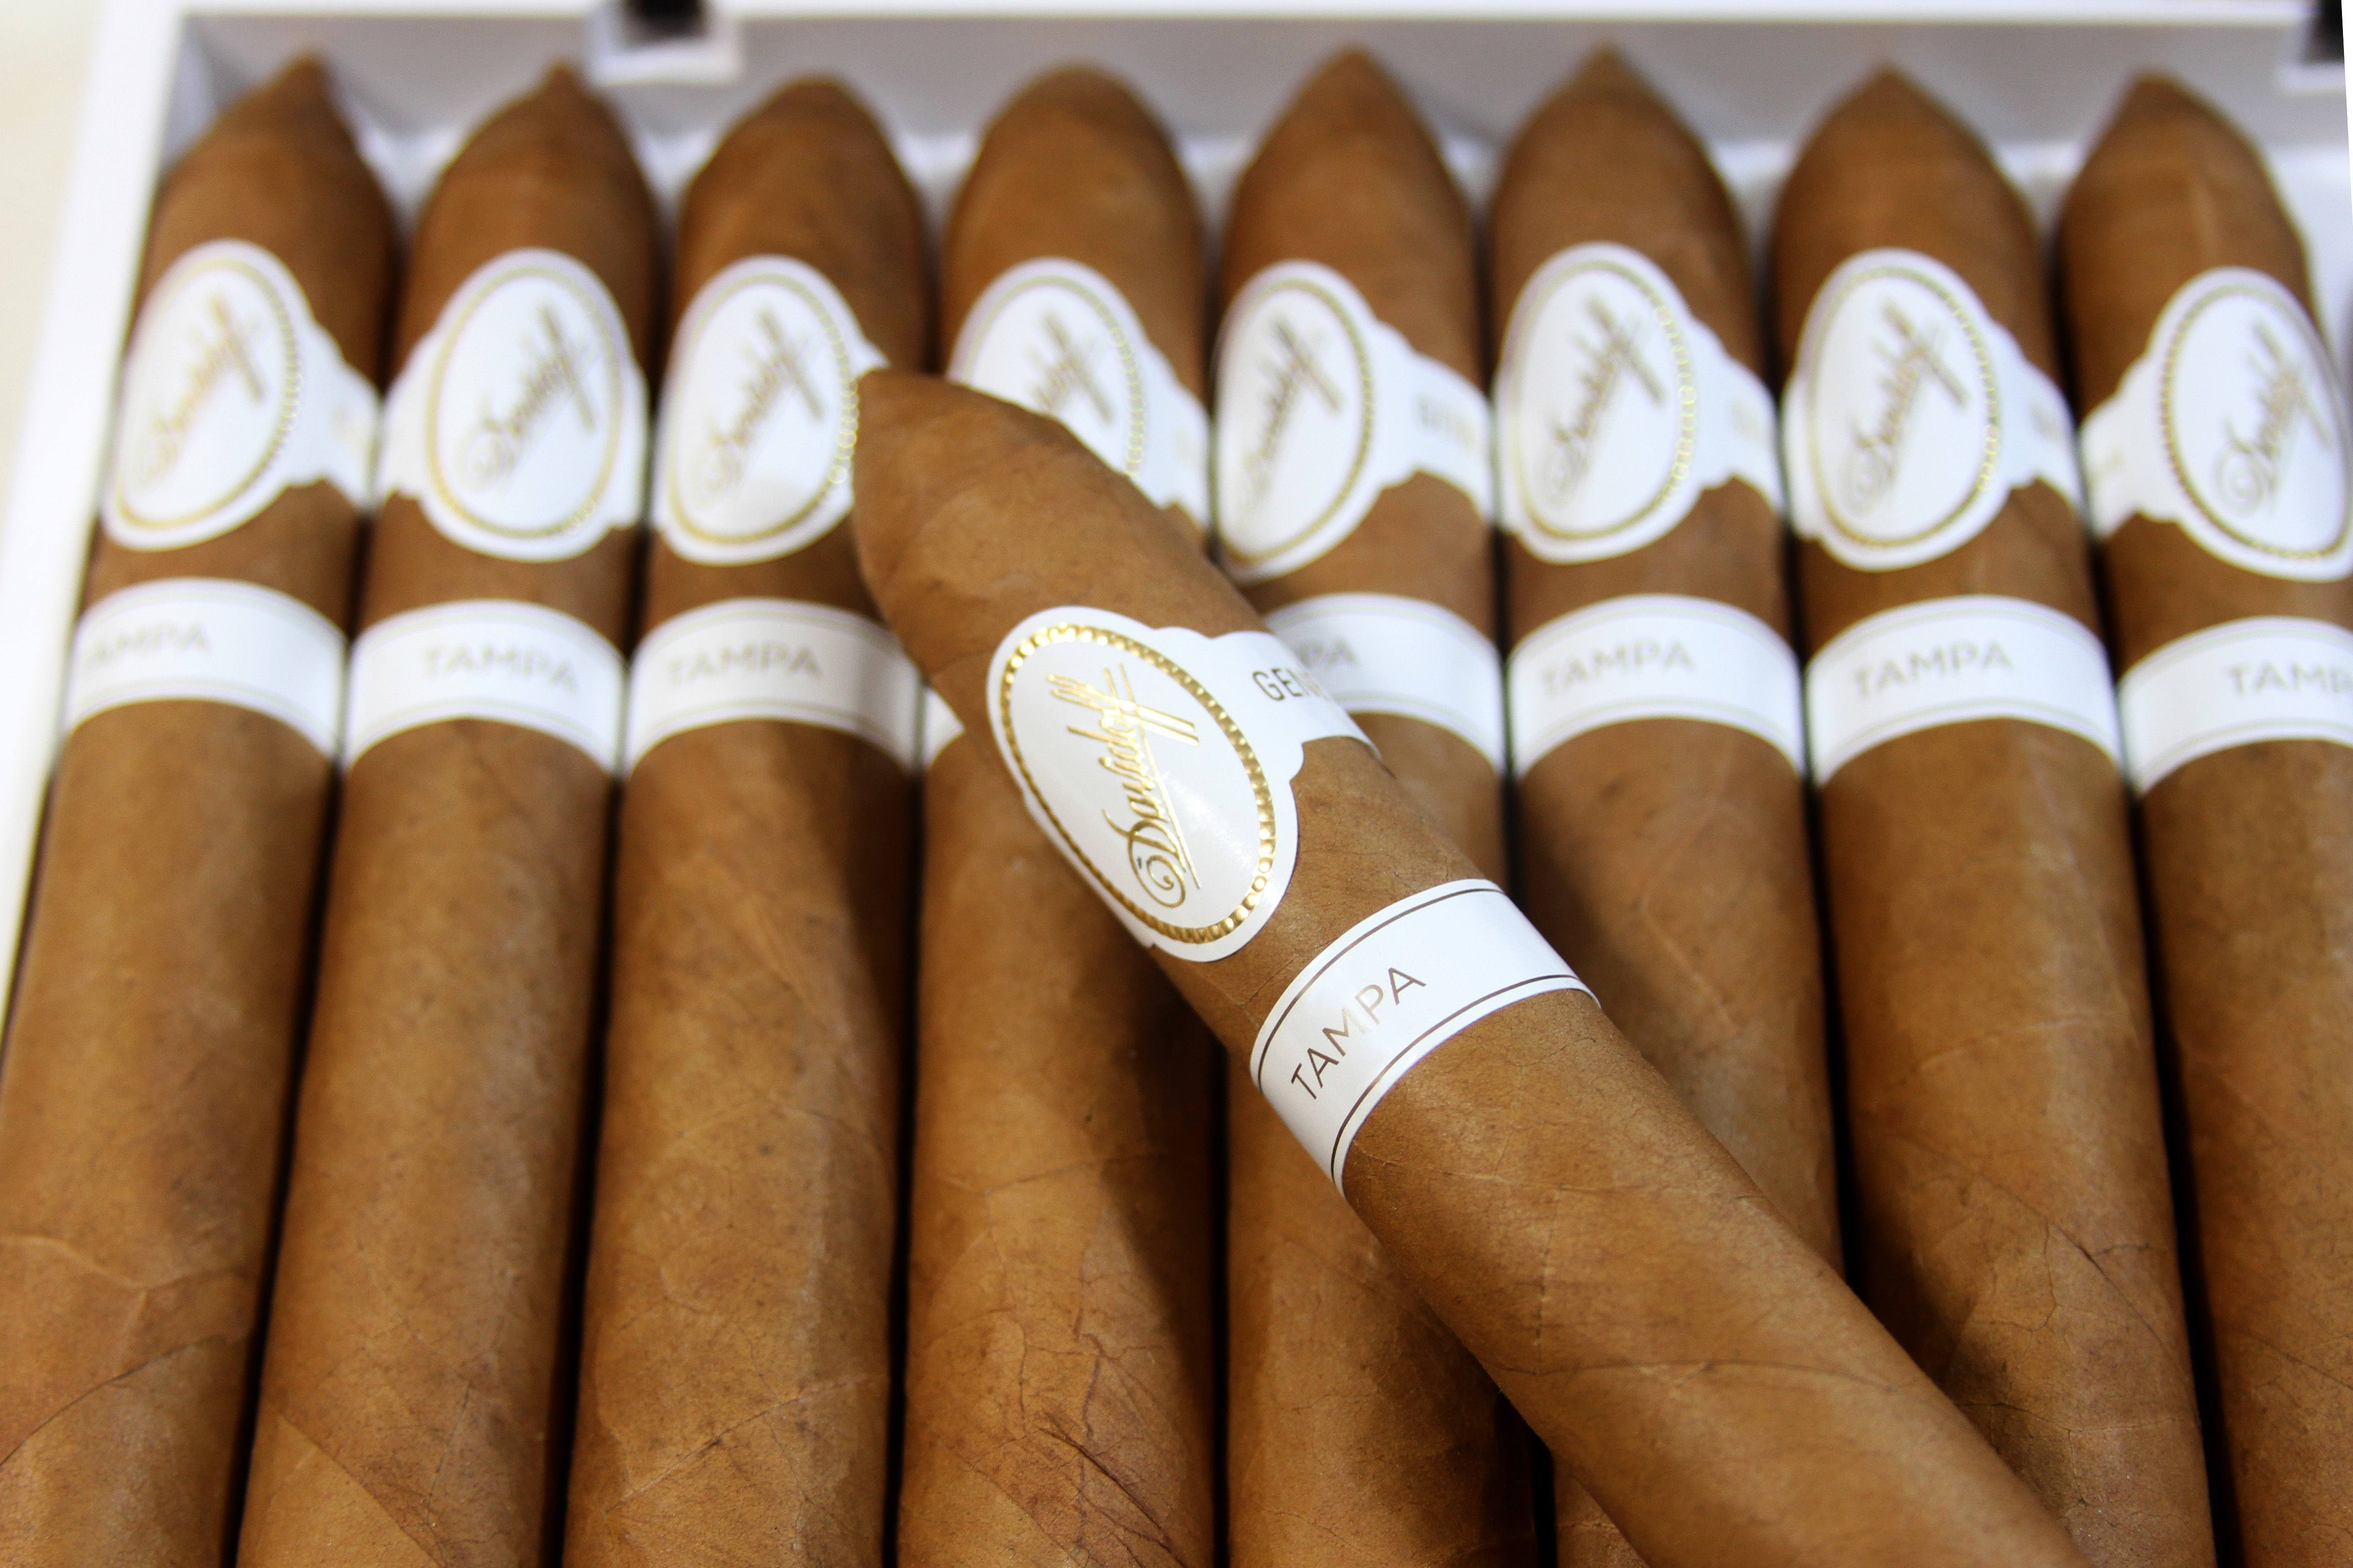 Davidoff Tampa Exclusive Cigars